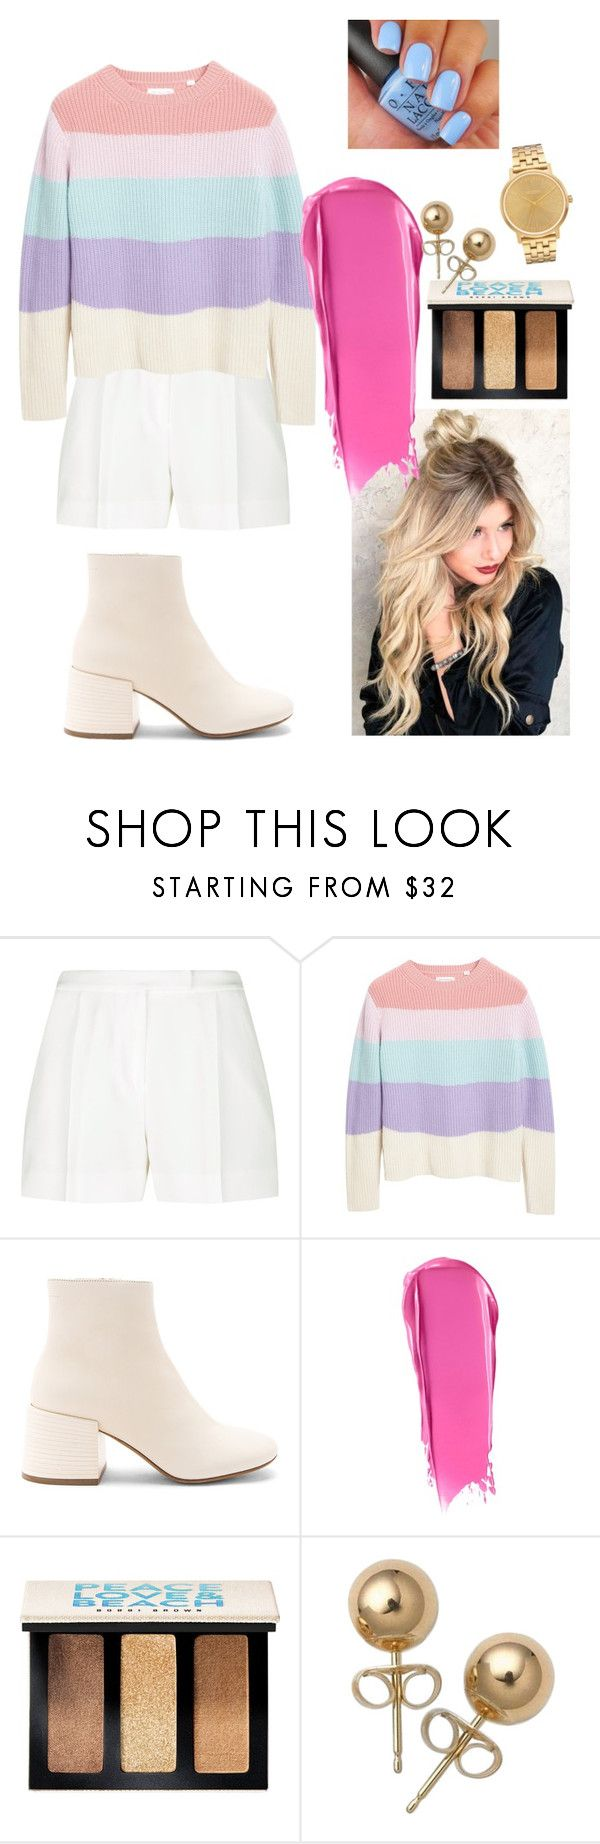 """""""Maria"""" by jolilollie on Polyvore featuring Elie Saab, Chinti and Parker, MM6 Maison Margiela, Liberty, Bobbi Brown Cosmetics, Bling Jewelry and Nixon"""